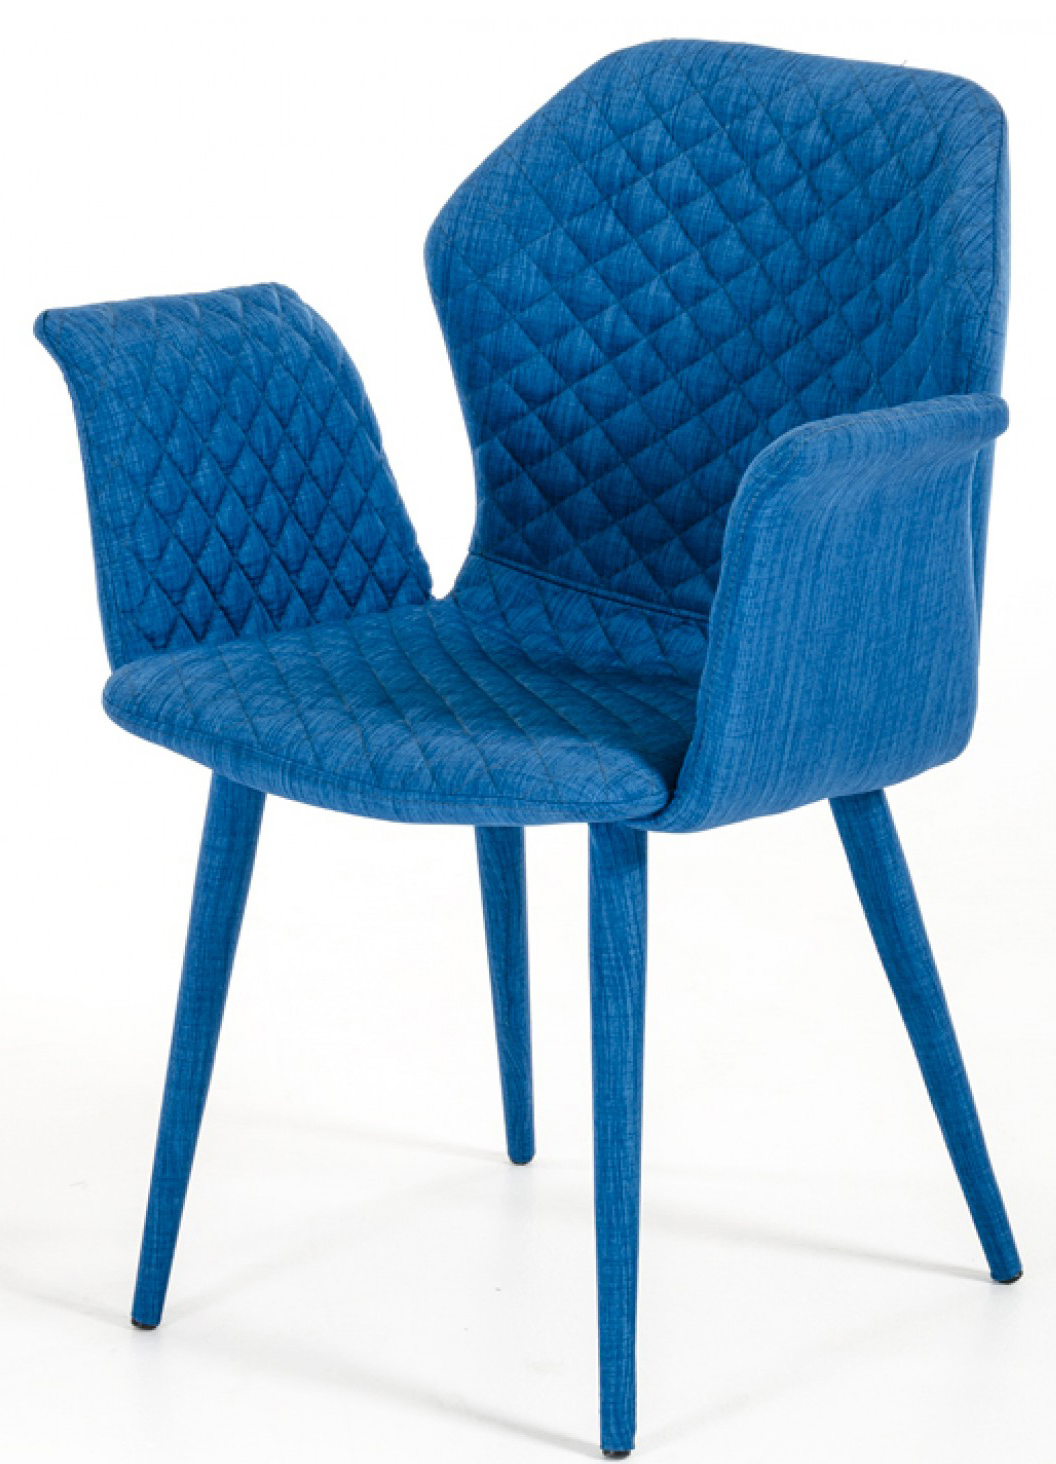 Charmant Advanced Interior Designs Recently Added A New Blue Chair To Its Collection  ...